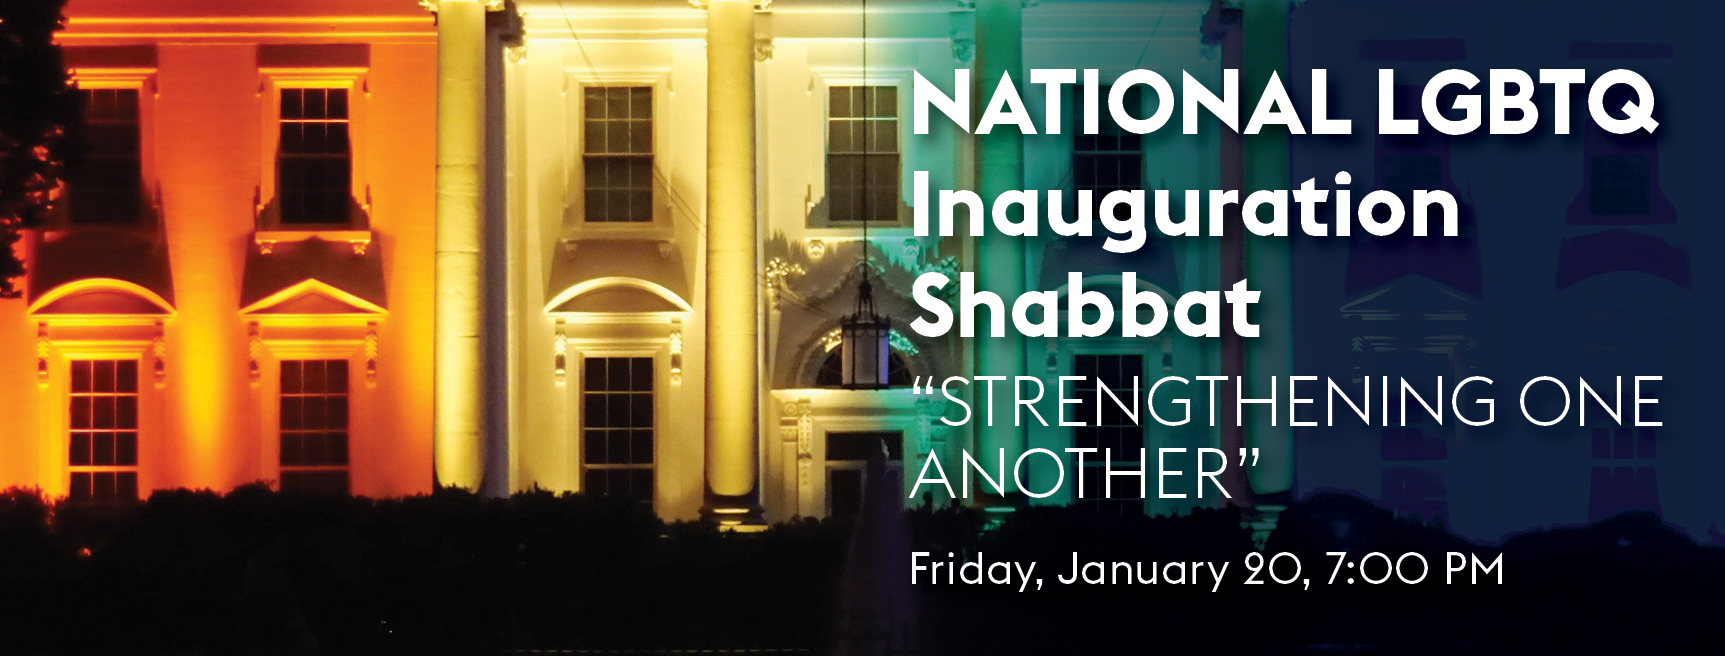 National Inauguration Shabbat 1/20/17